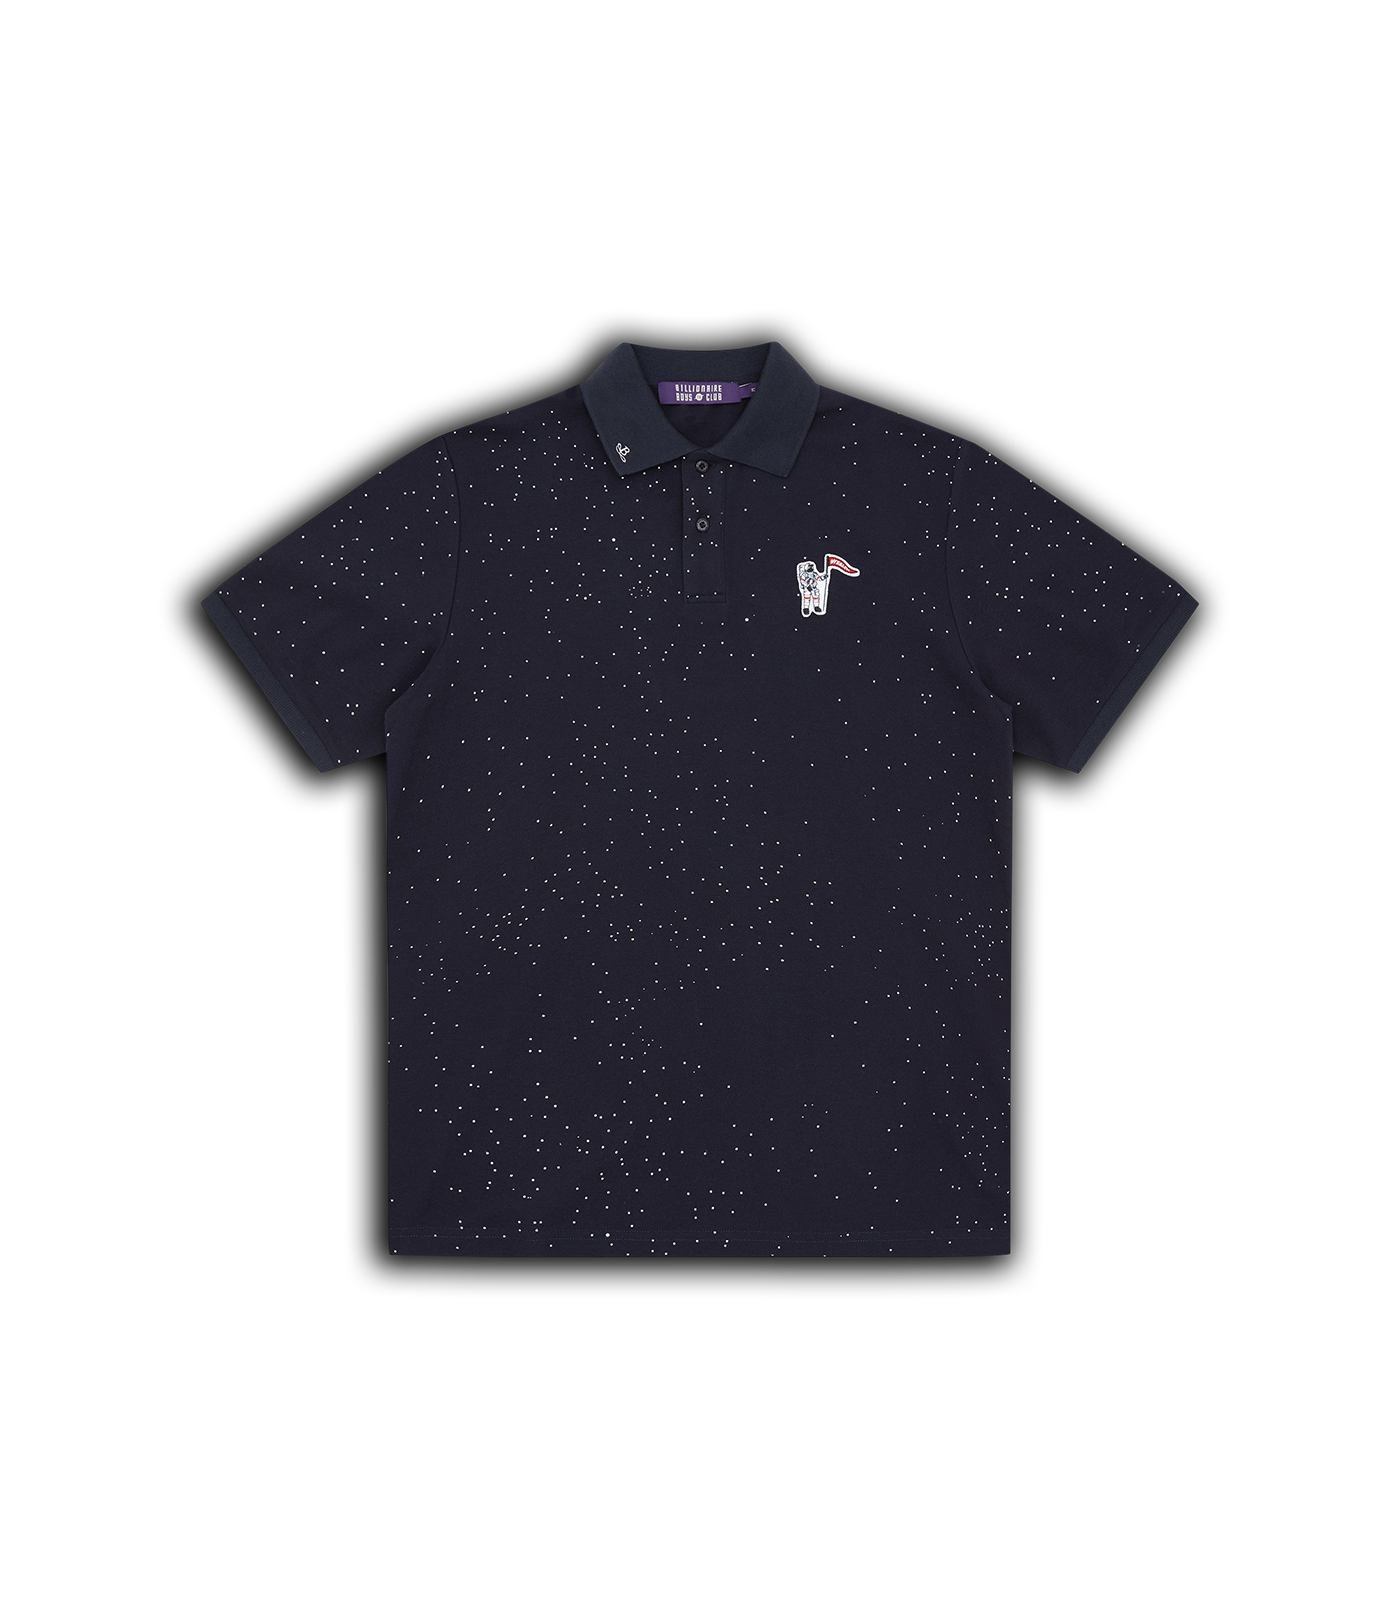 DEEP SPACE PIQUE POLO SHIRT - NAVY